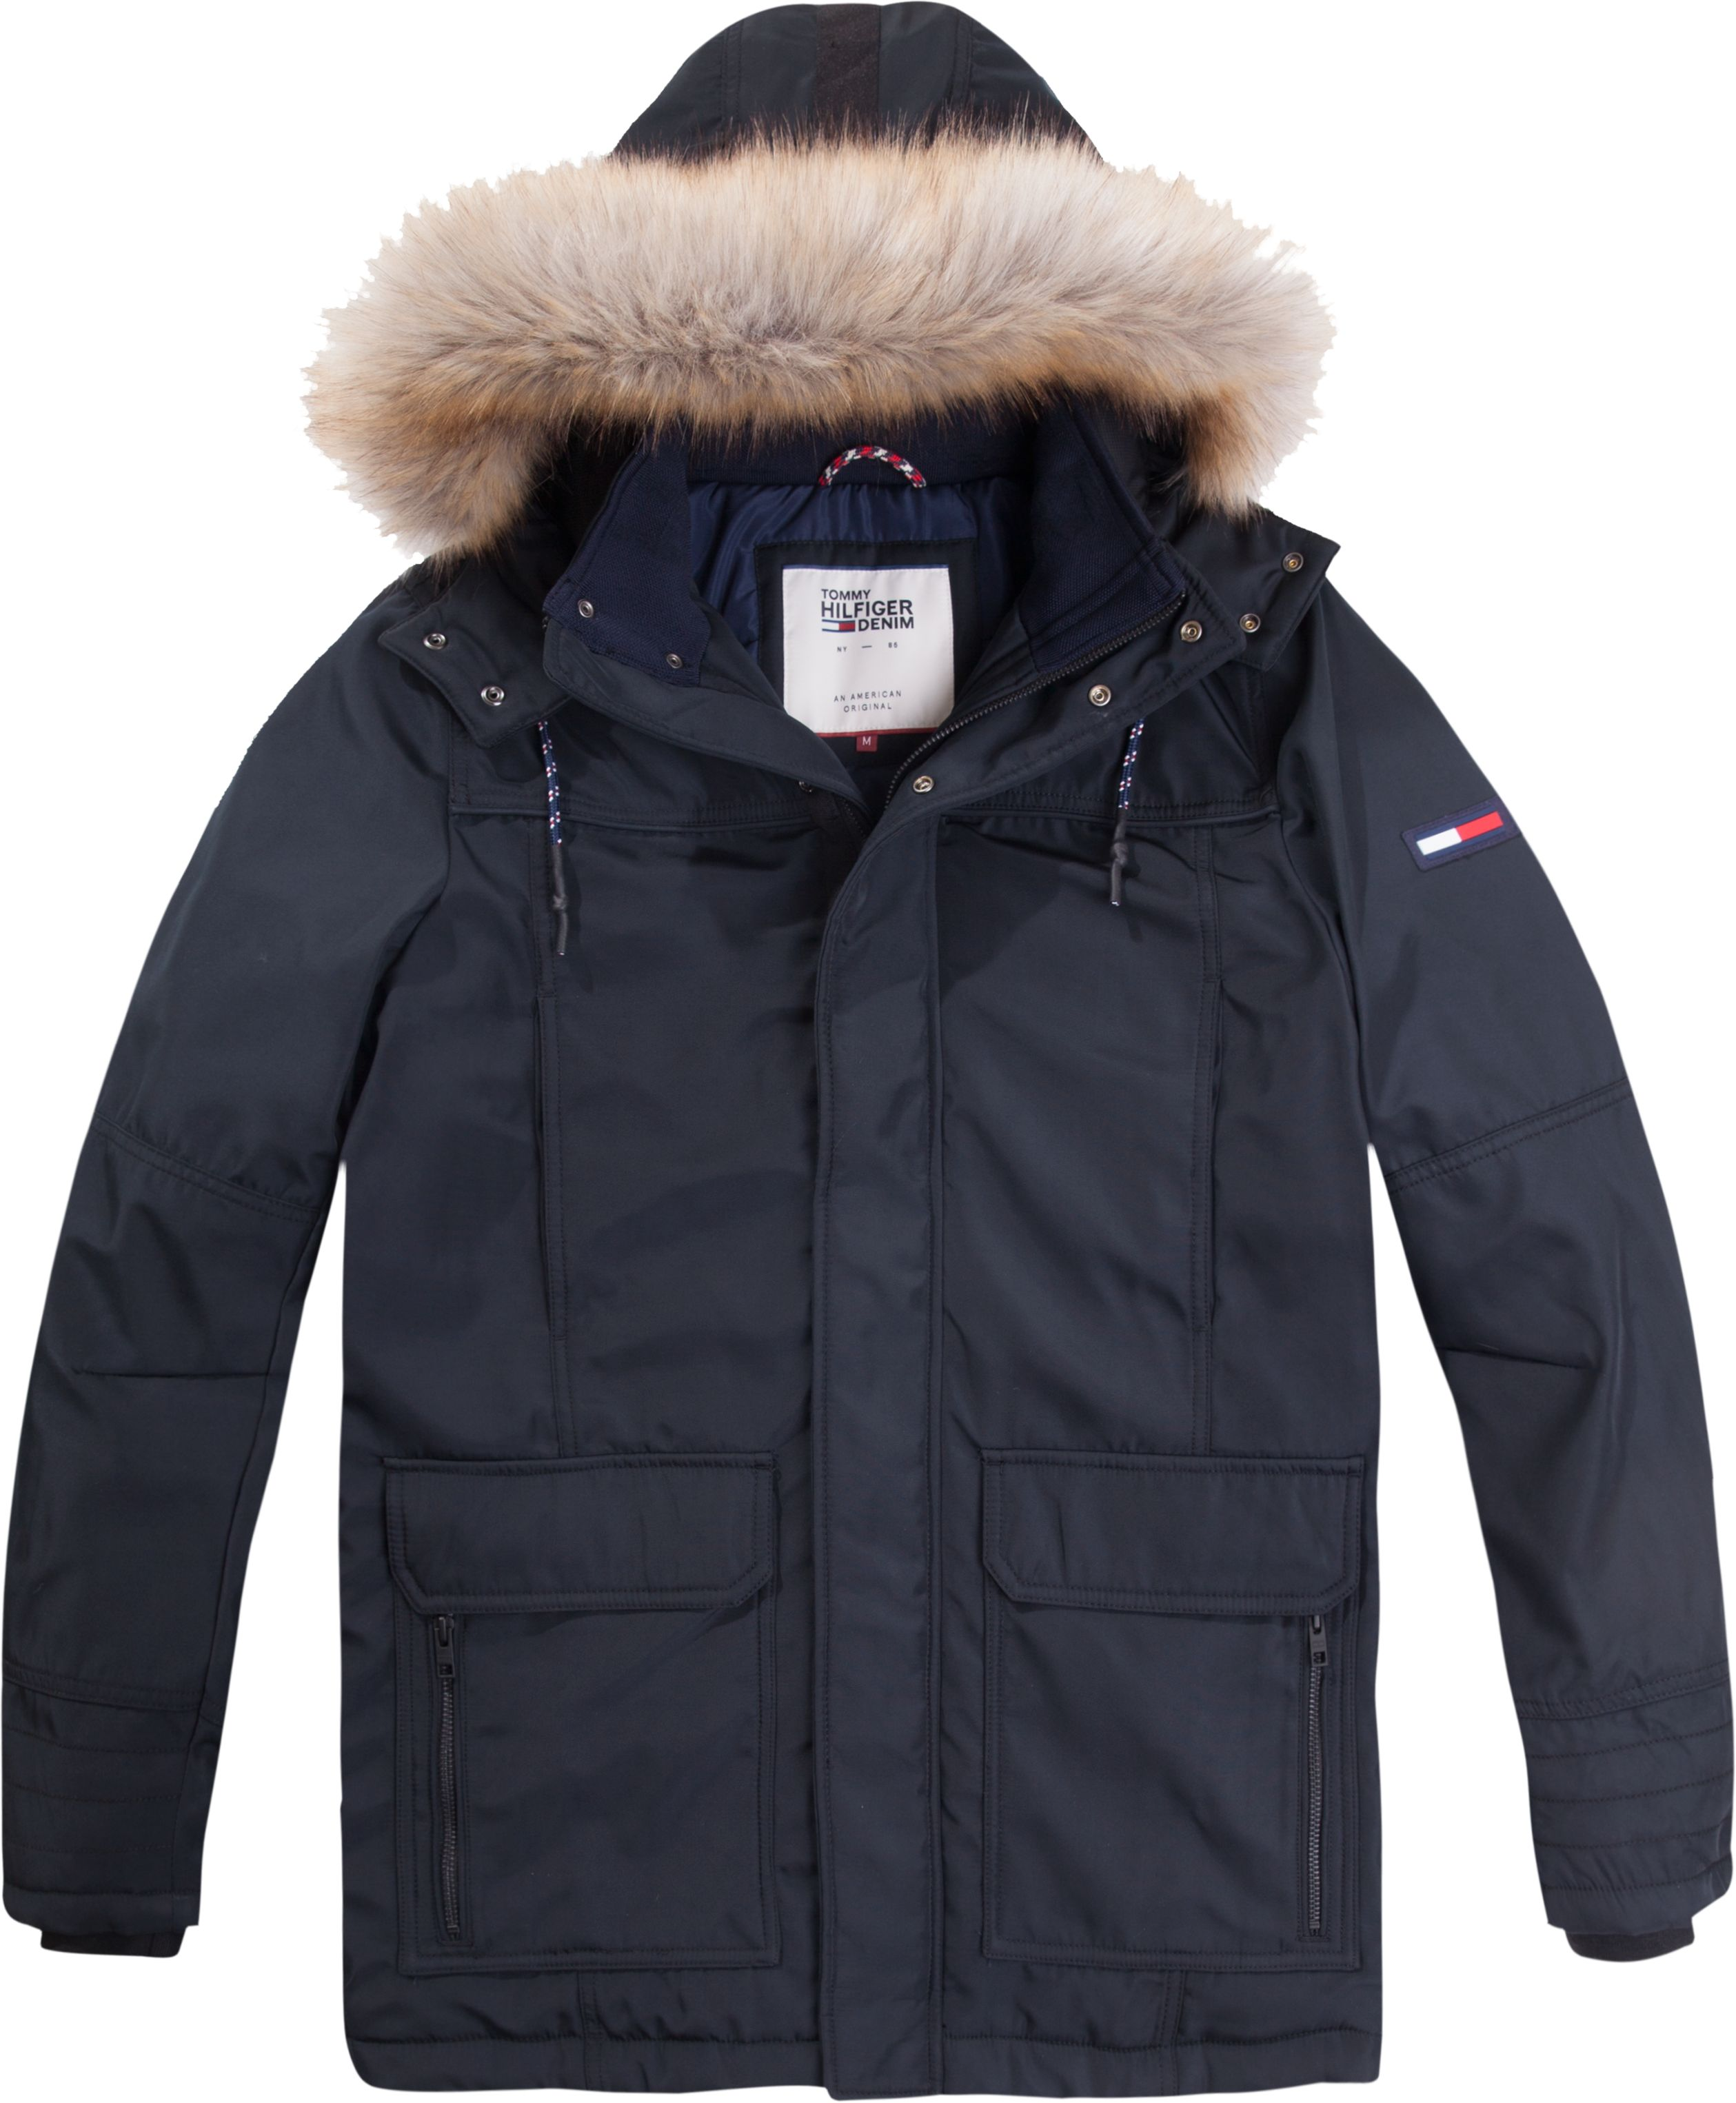 Men's Parkas | Shop Men's Parka Coats - House of Fraser